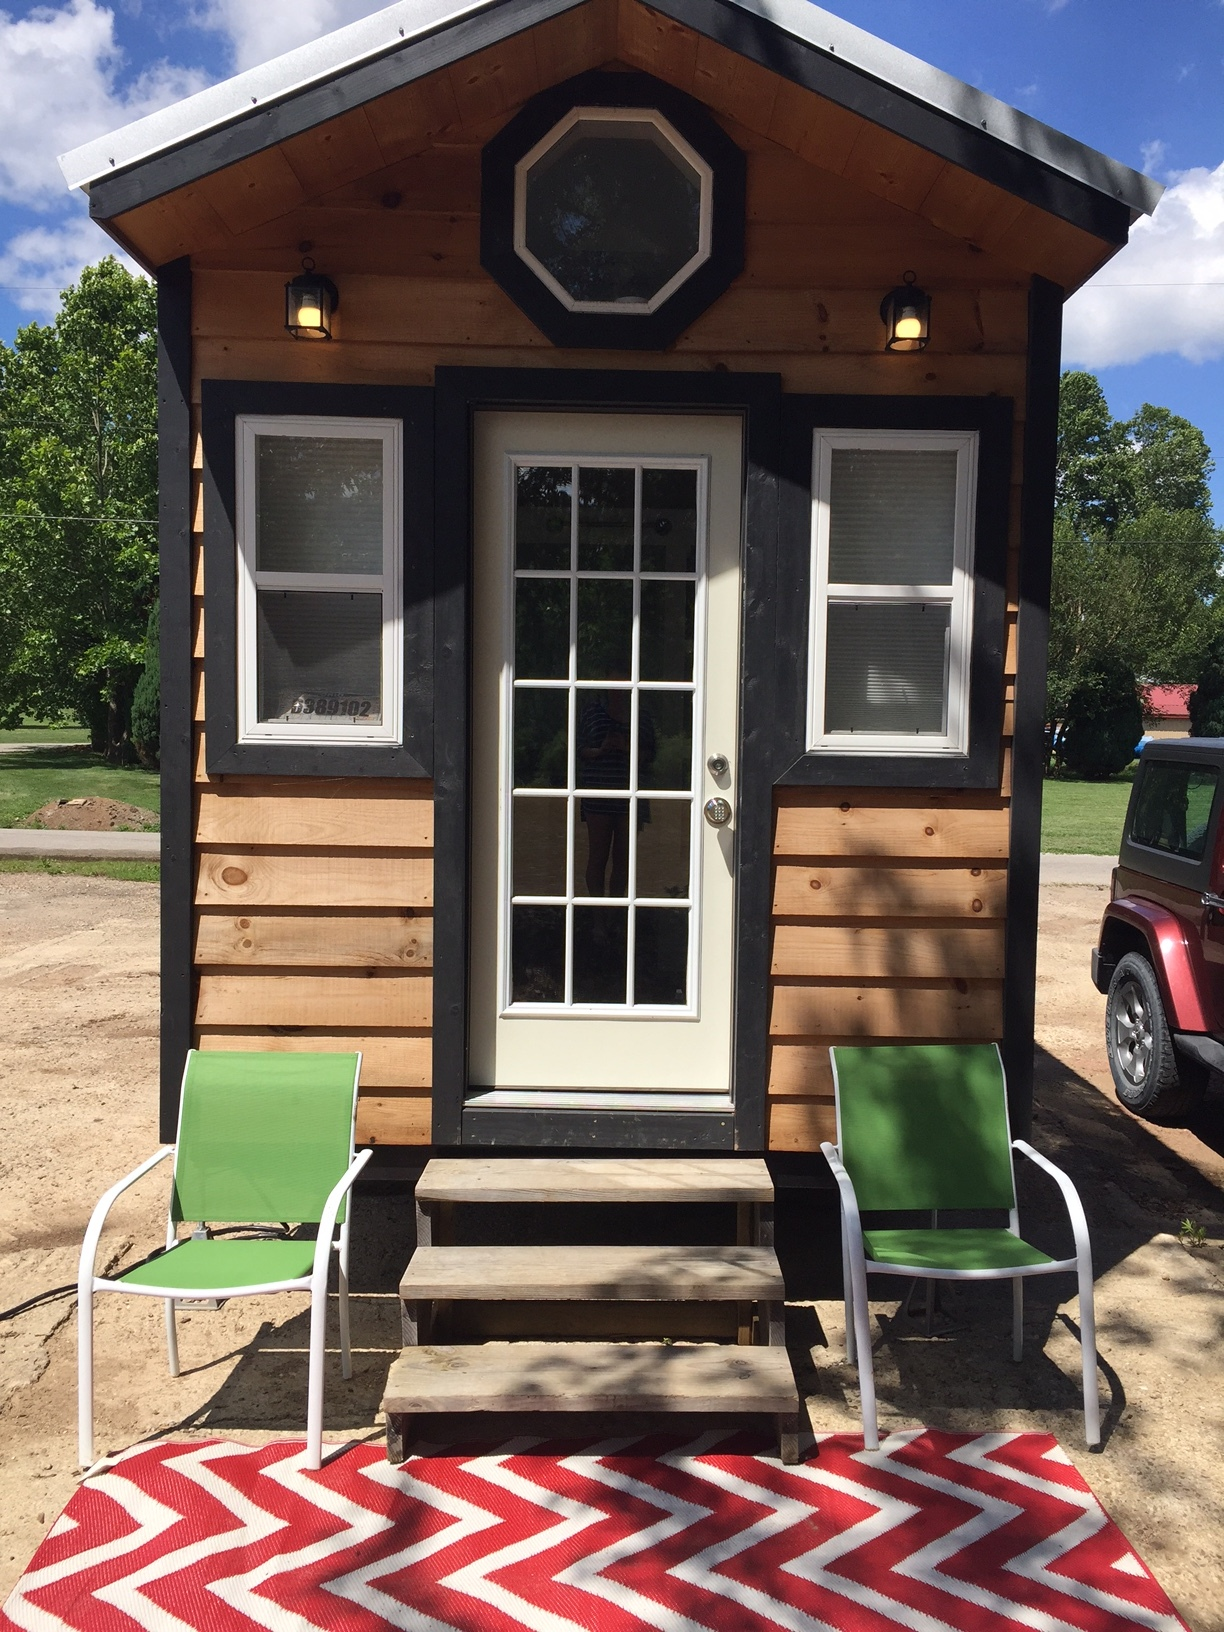 Tiny home on wheels in Marietta, OH